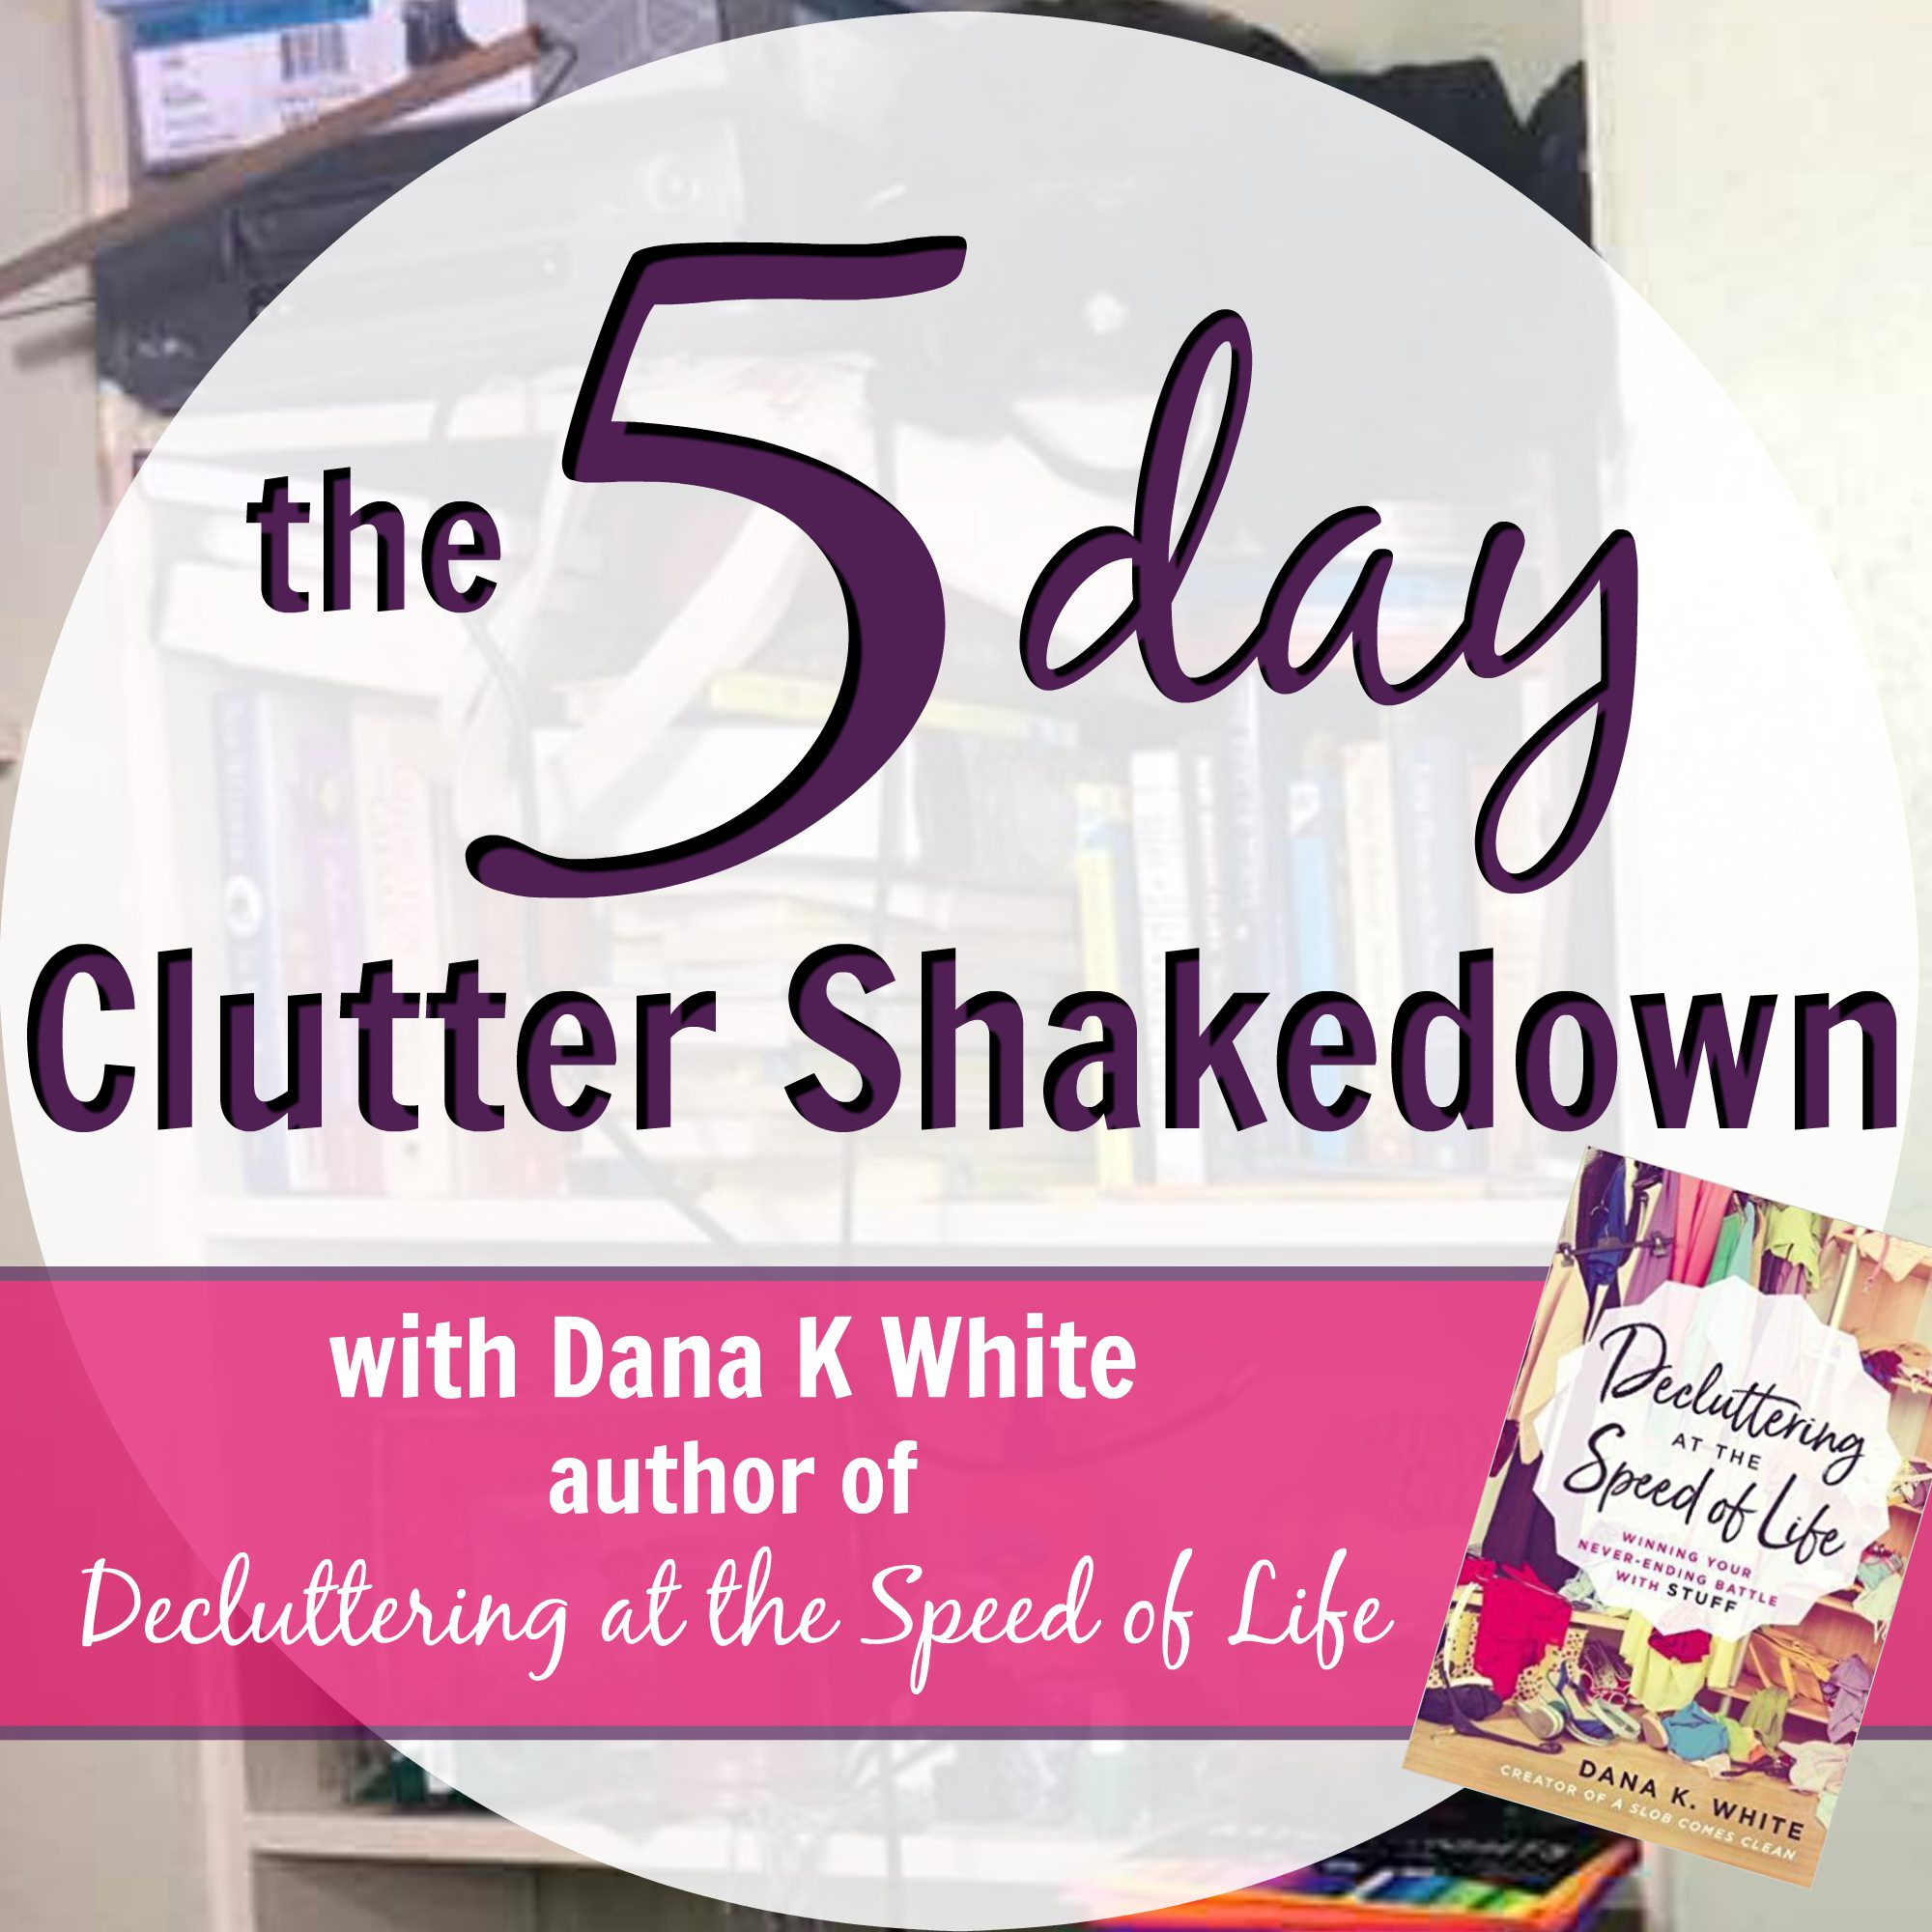 Want to see the principles in action? Check out my video course: The 5 Day Clutter Shakedown.